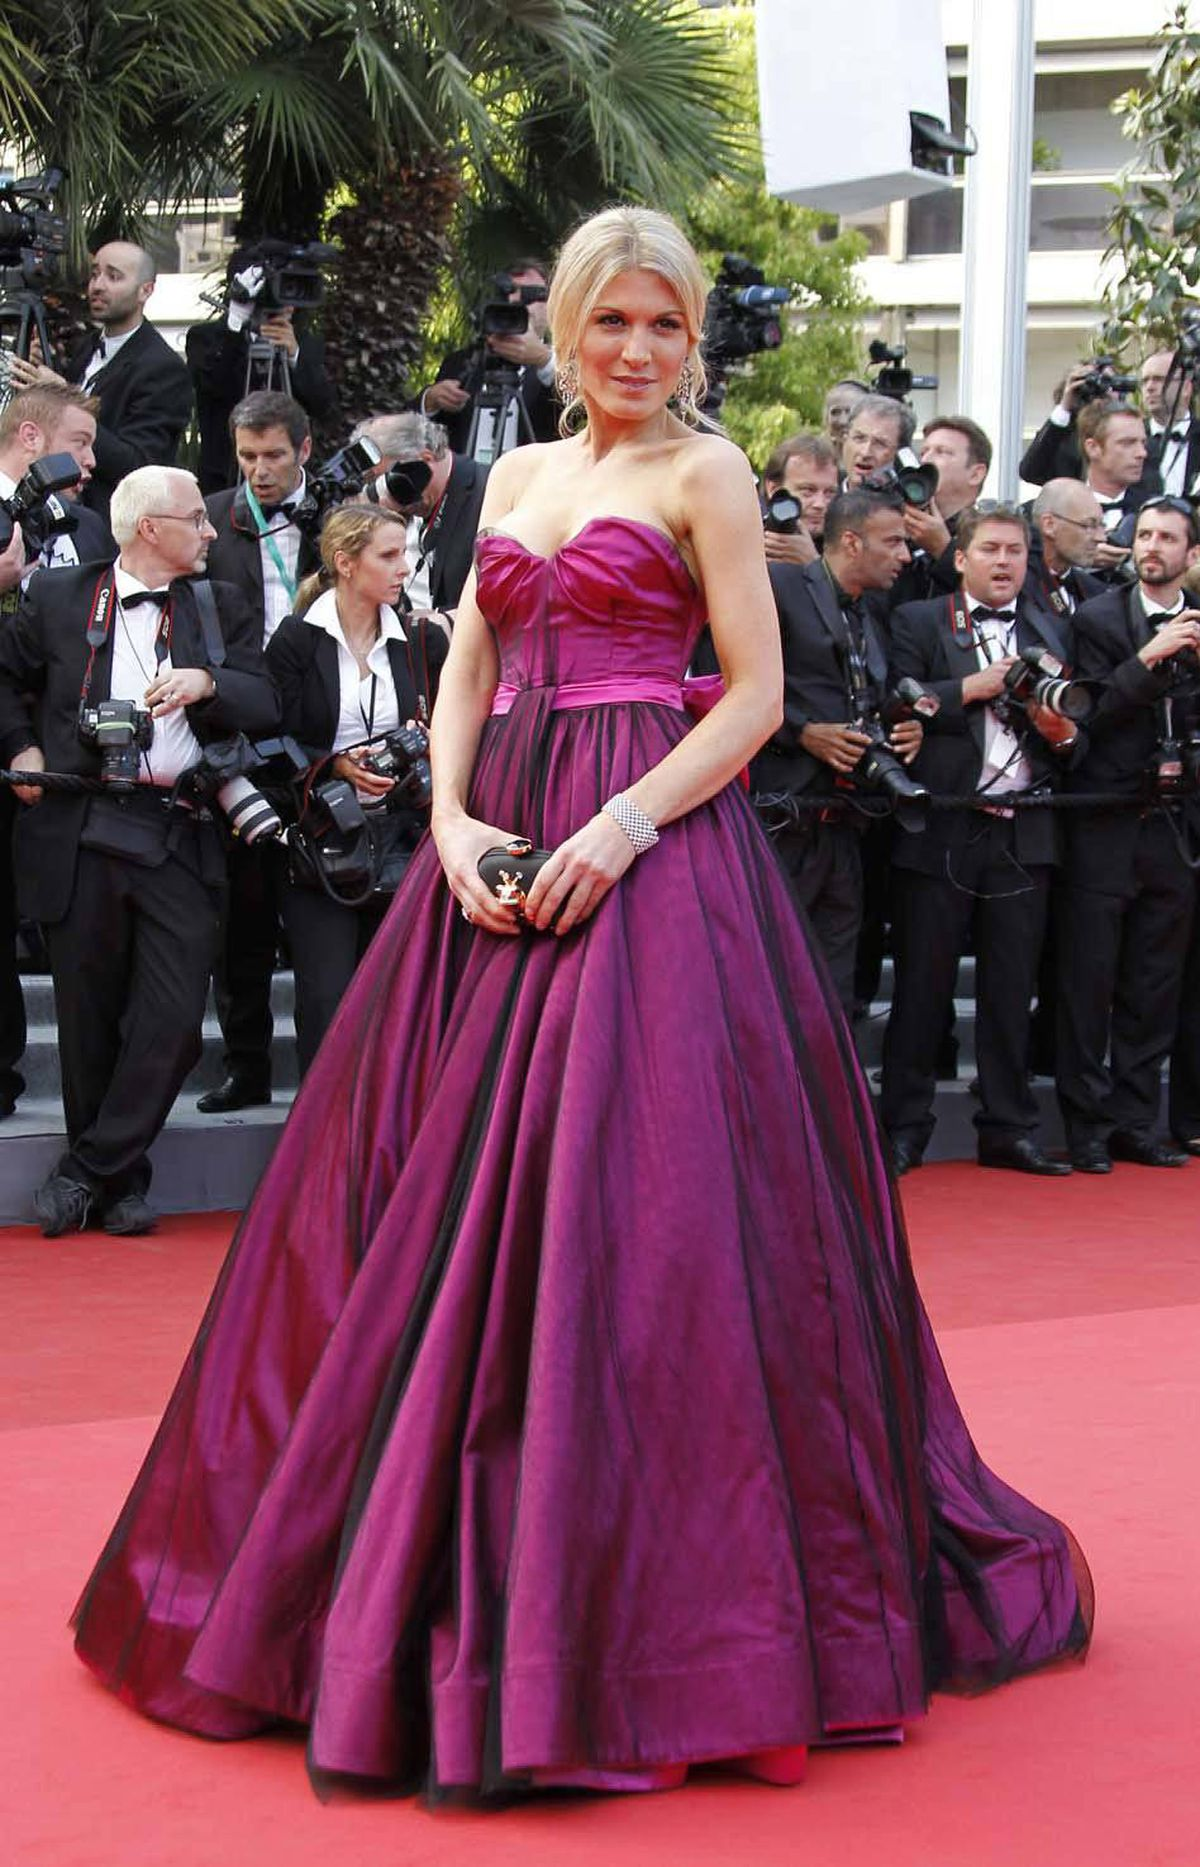 "Model Hofit Golan poses on the red carpet before the screening of ""Sleeping Beauty"" at the Cannes Film Festival on Thursday."